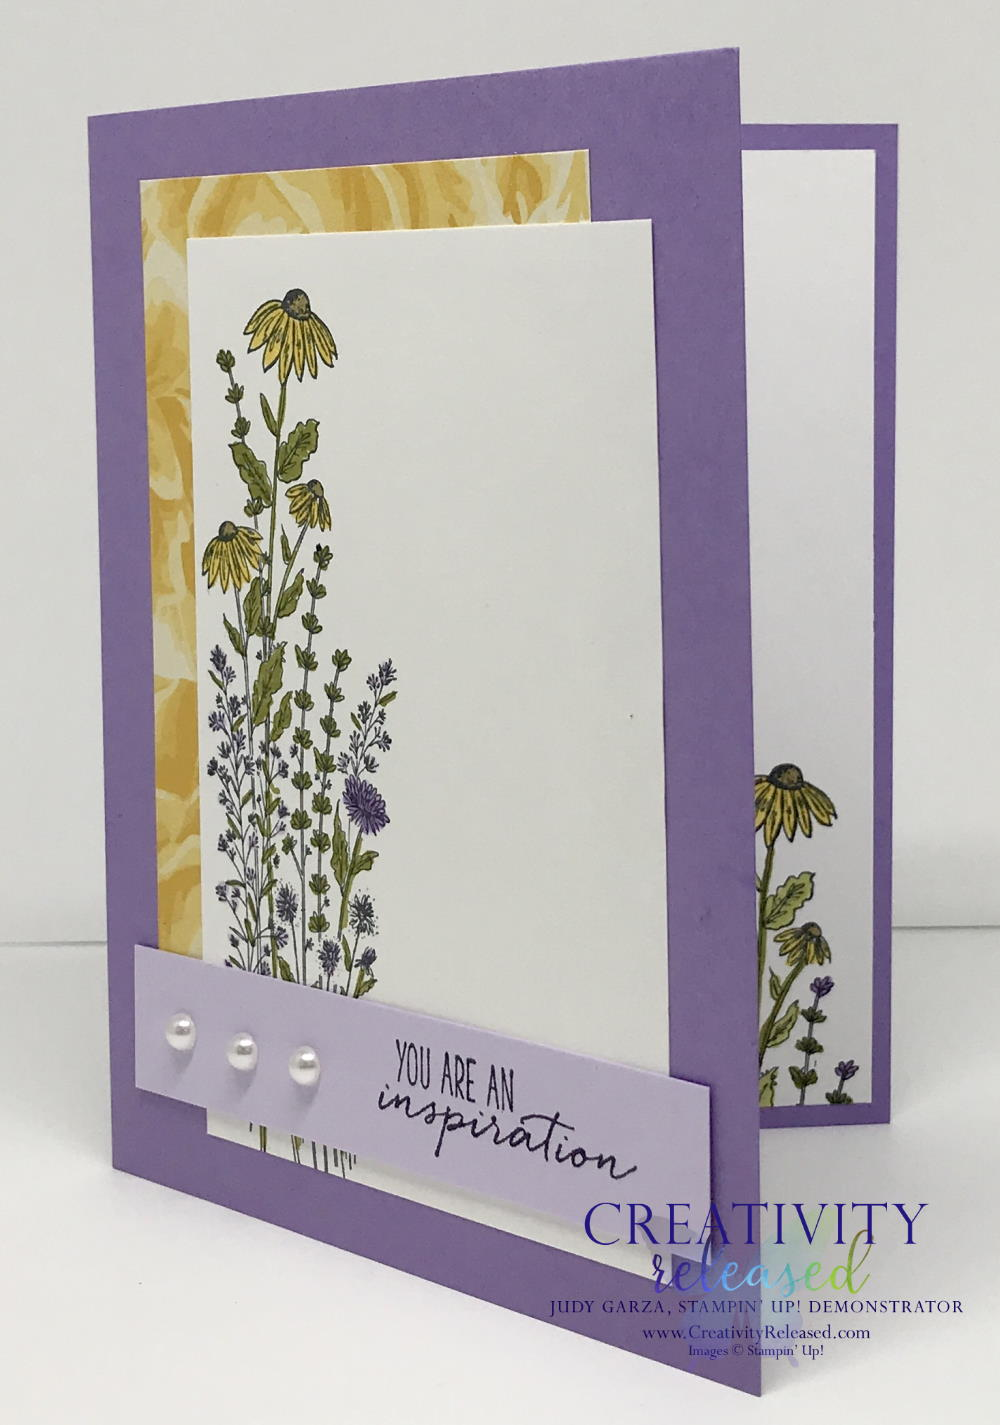 A side view of an uplifting card made with the Dragonfly Garden stamp set by Stampin' Up! using purples and yellows.